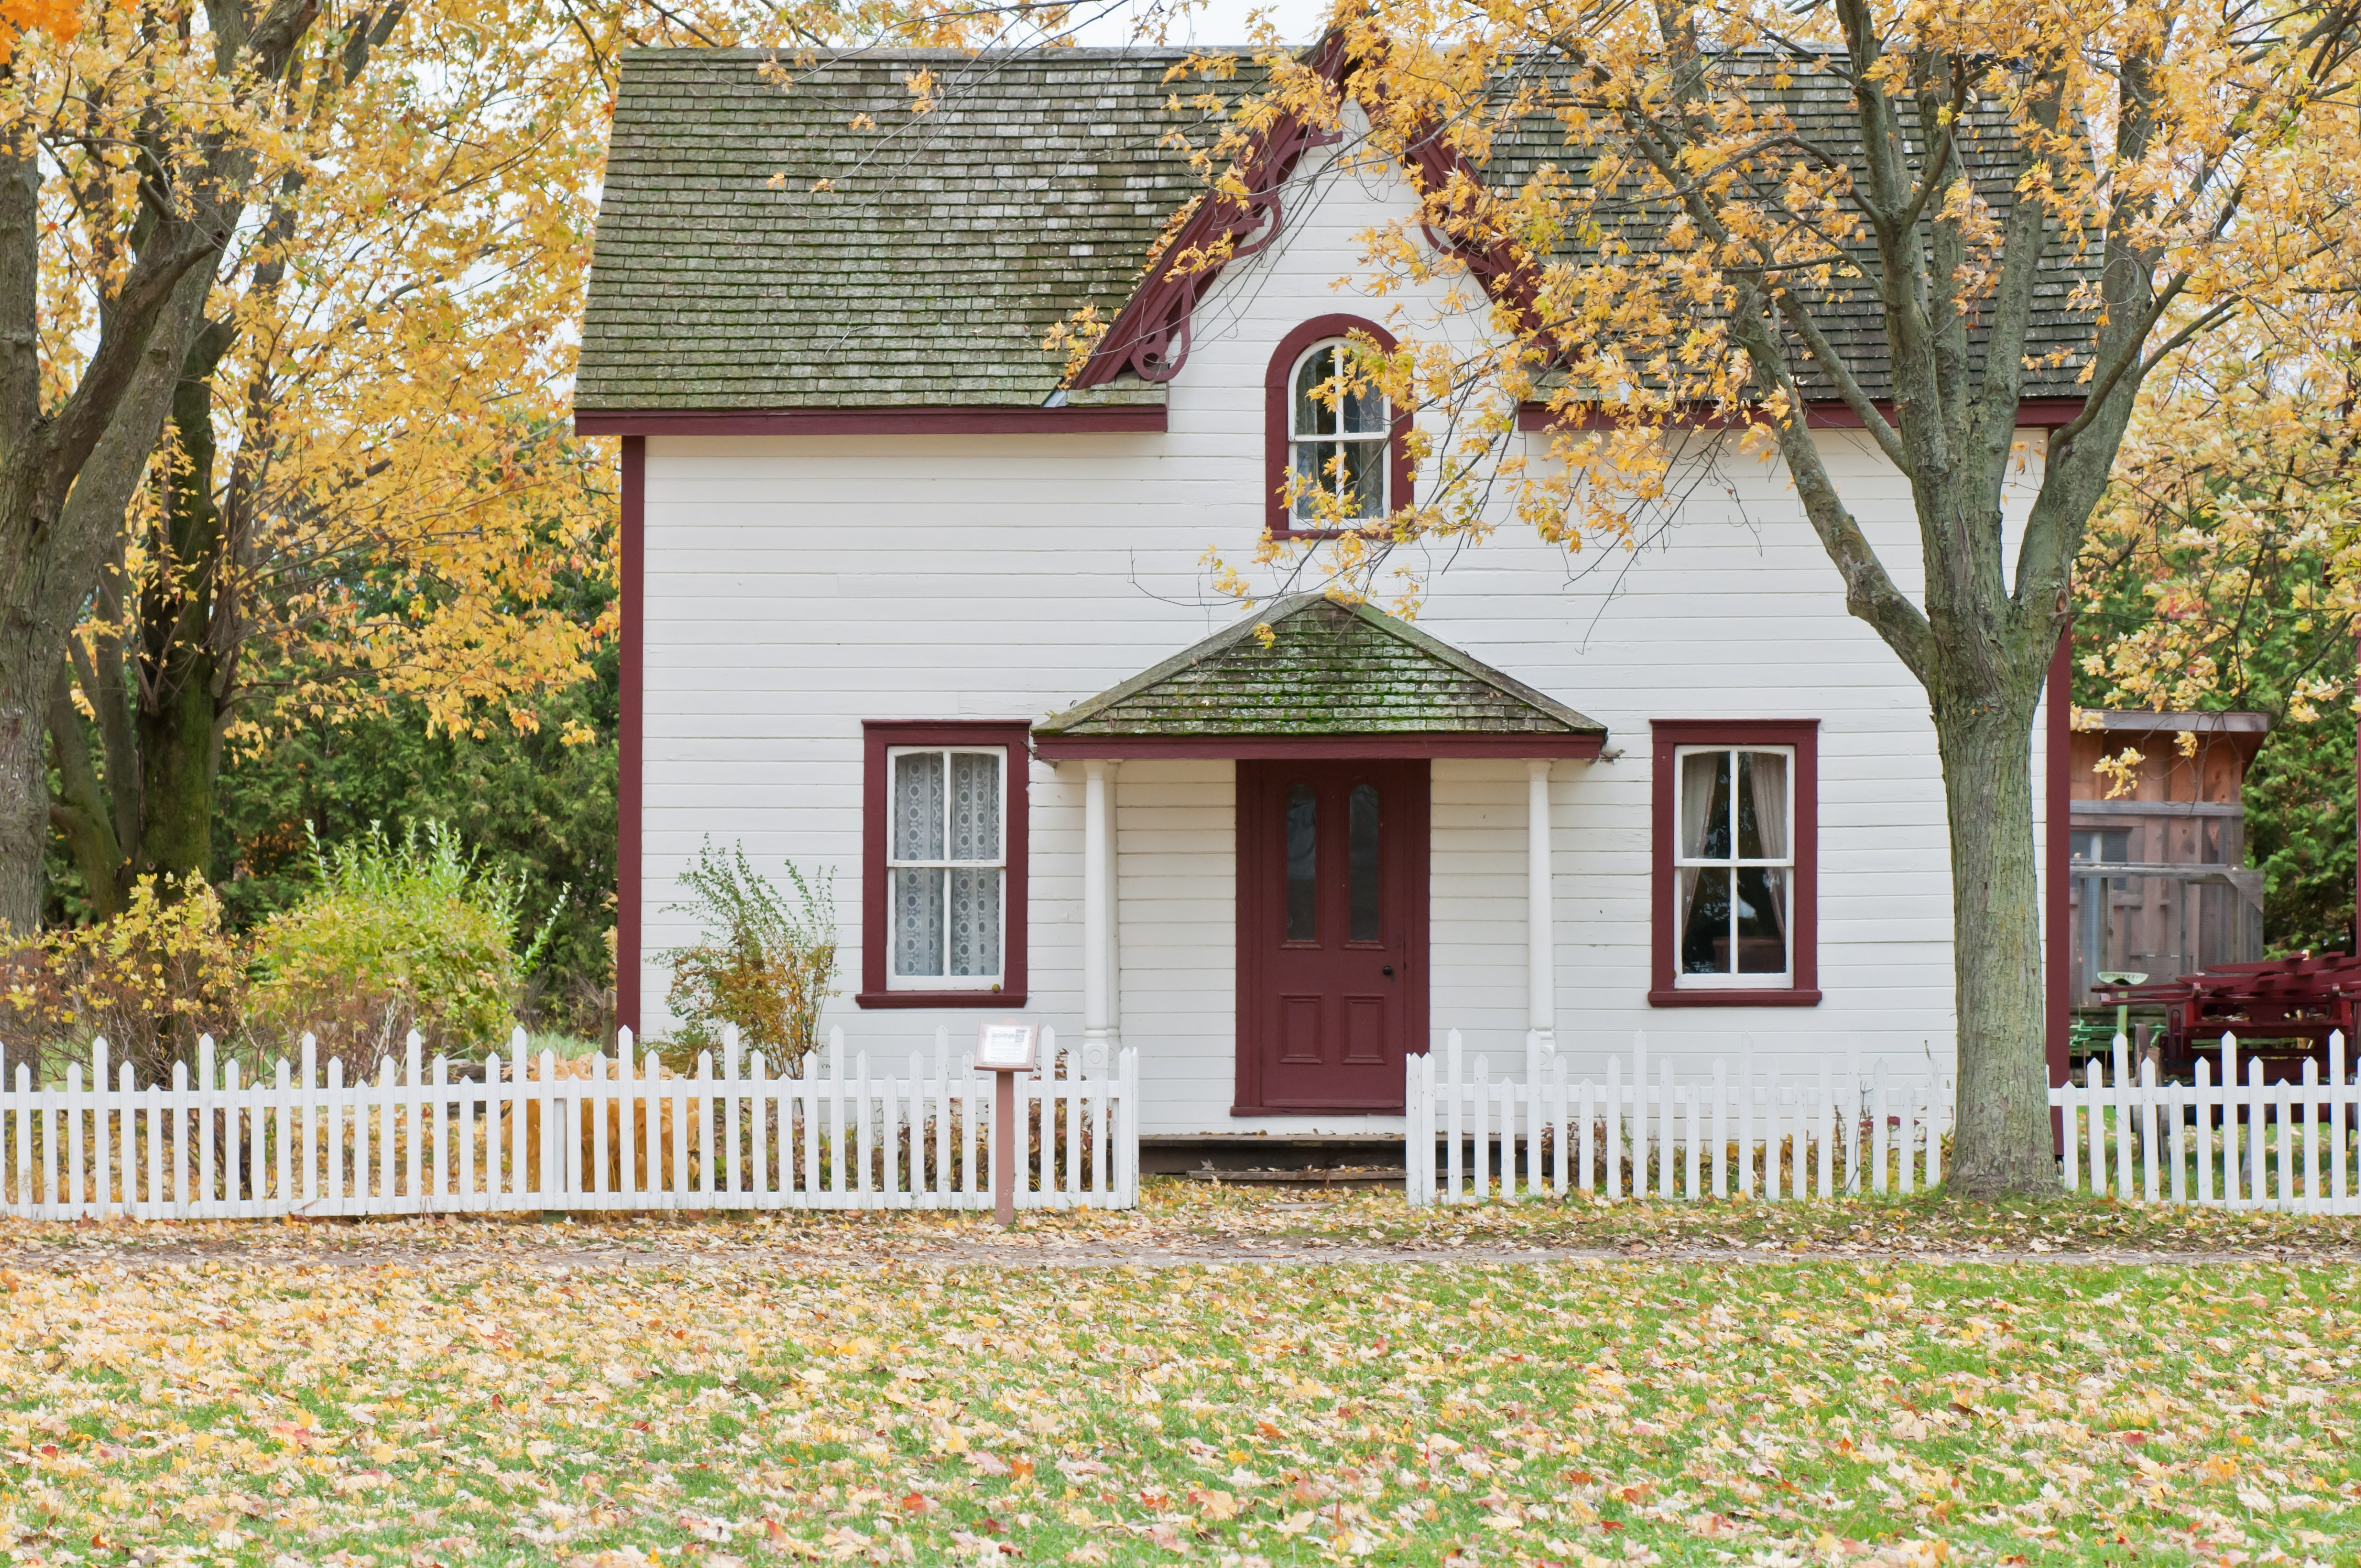 amortization length for a mortgage